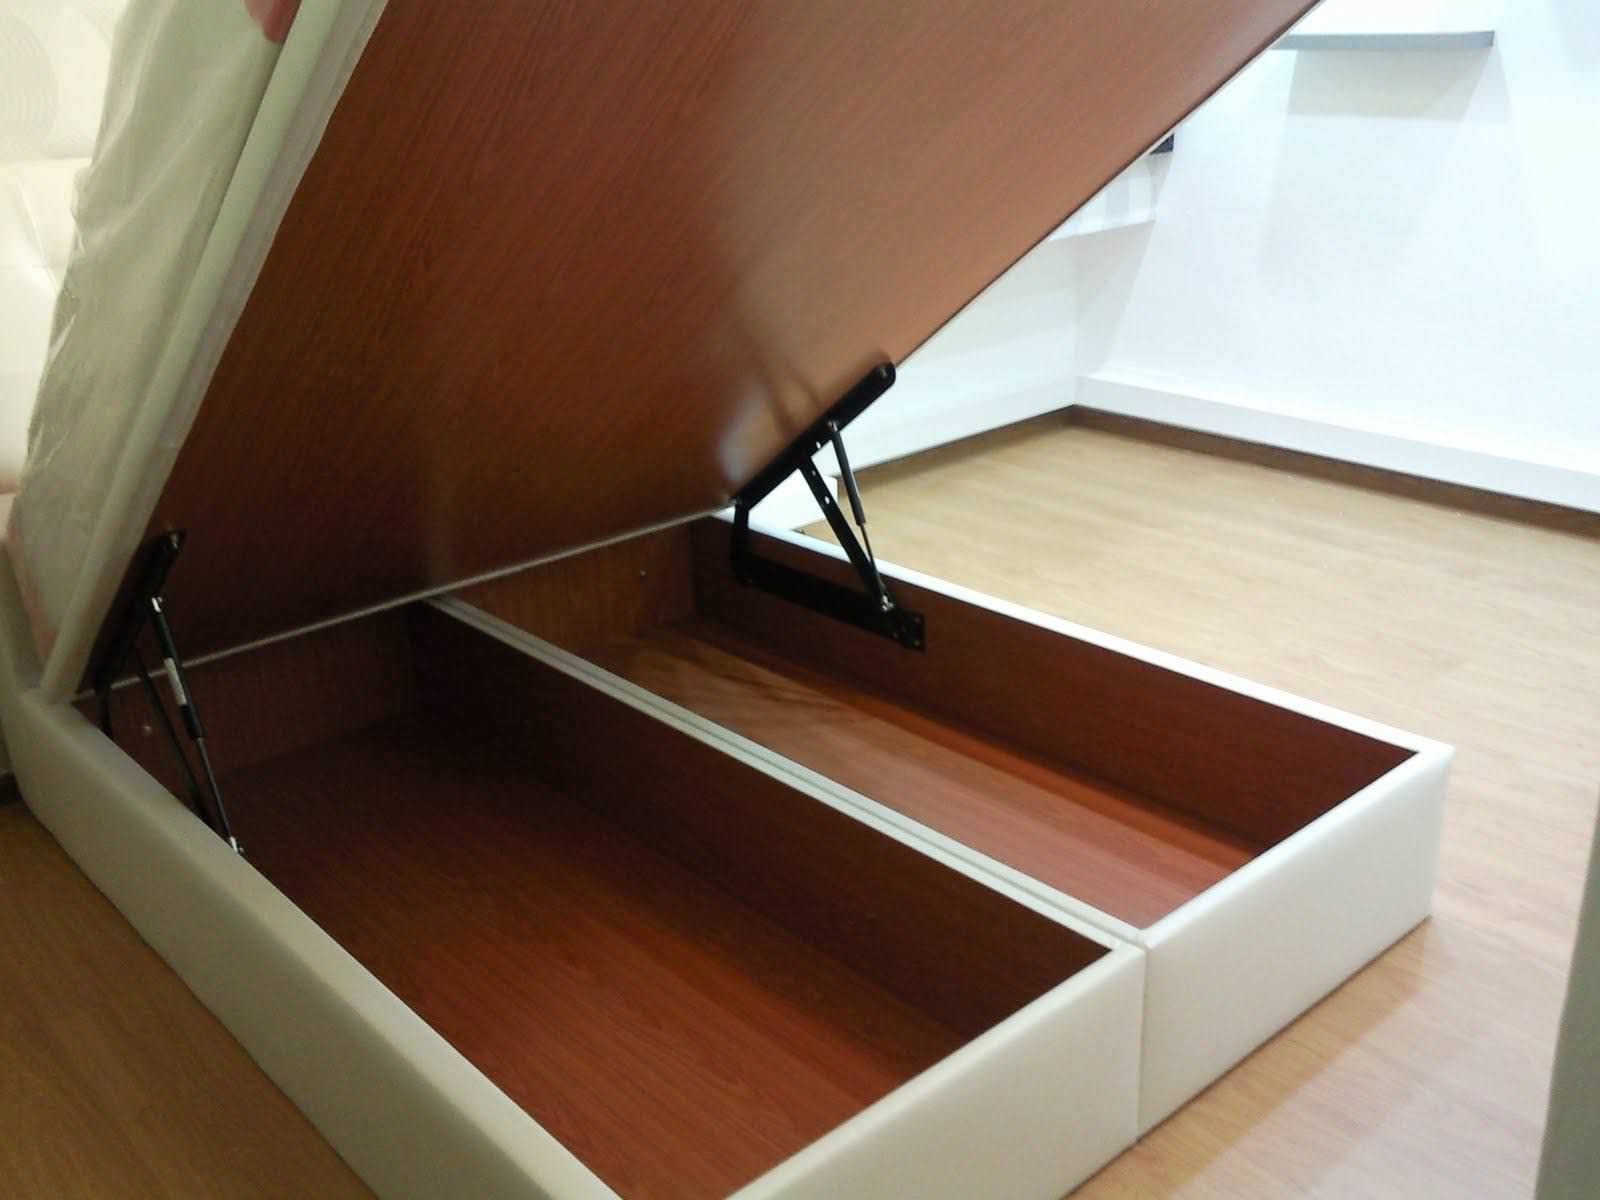 Best ideas about DIY Bed Frame Plans . Save or Pin How to DIY Queen Bed Frame Plans A Few Simple Tips Now.